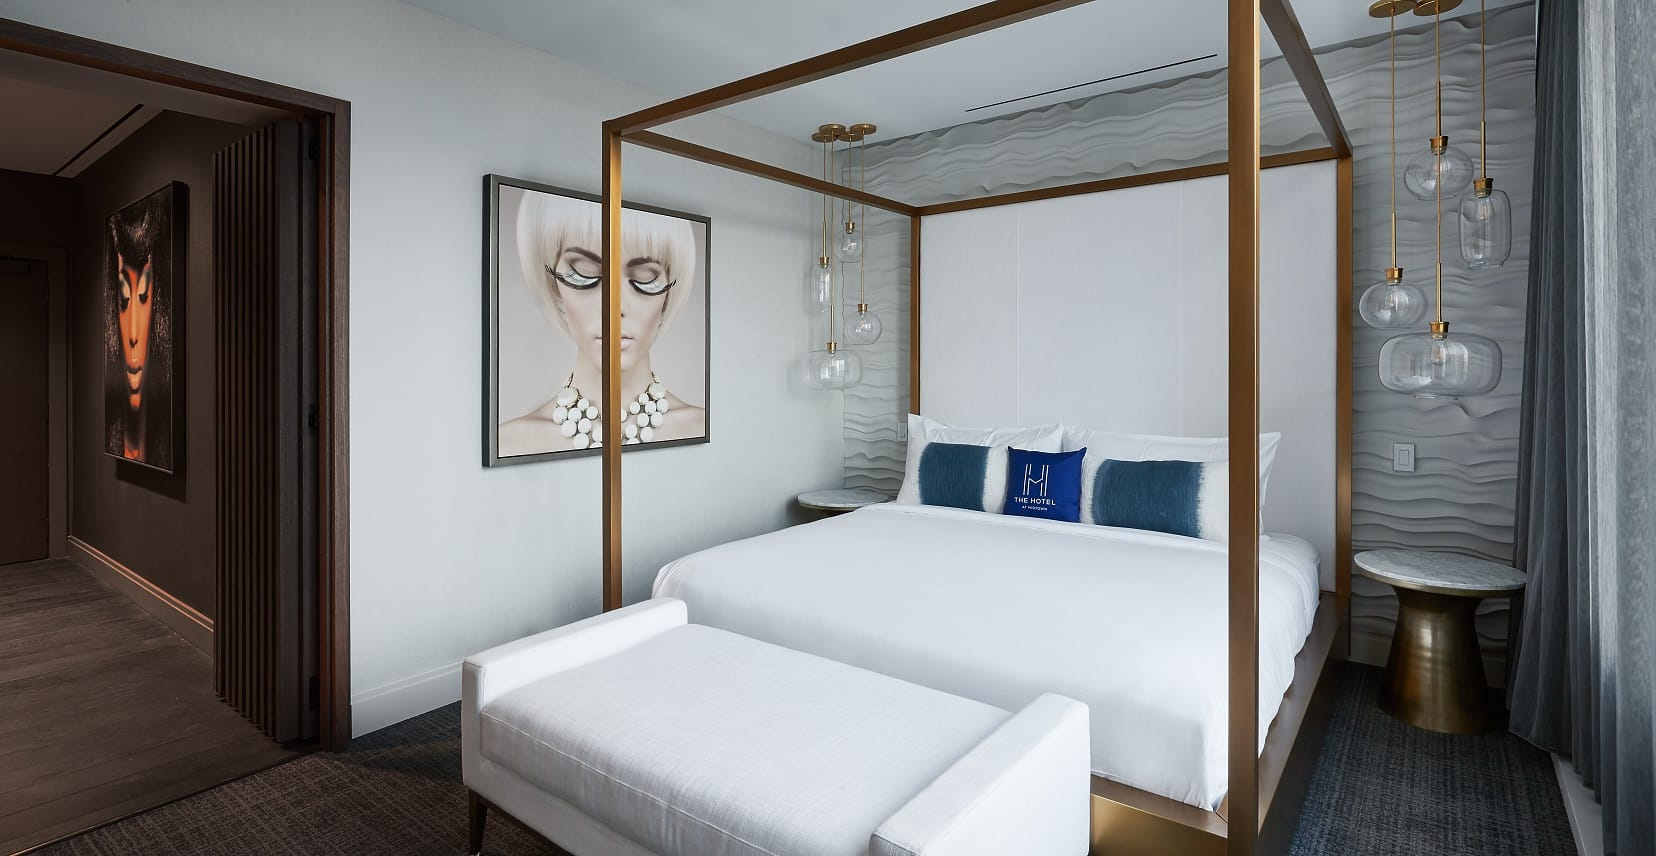 V Suite at Midtown Athletic Club | Bedroom 2 | Chicago, IL | Hospitality | Interior Design